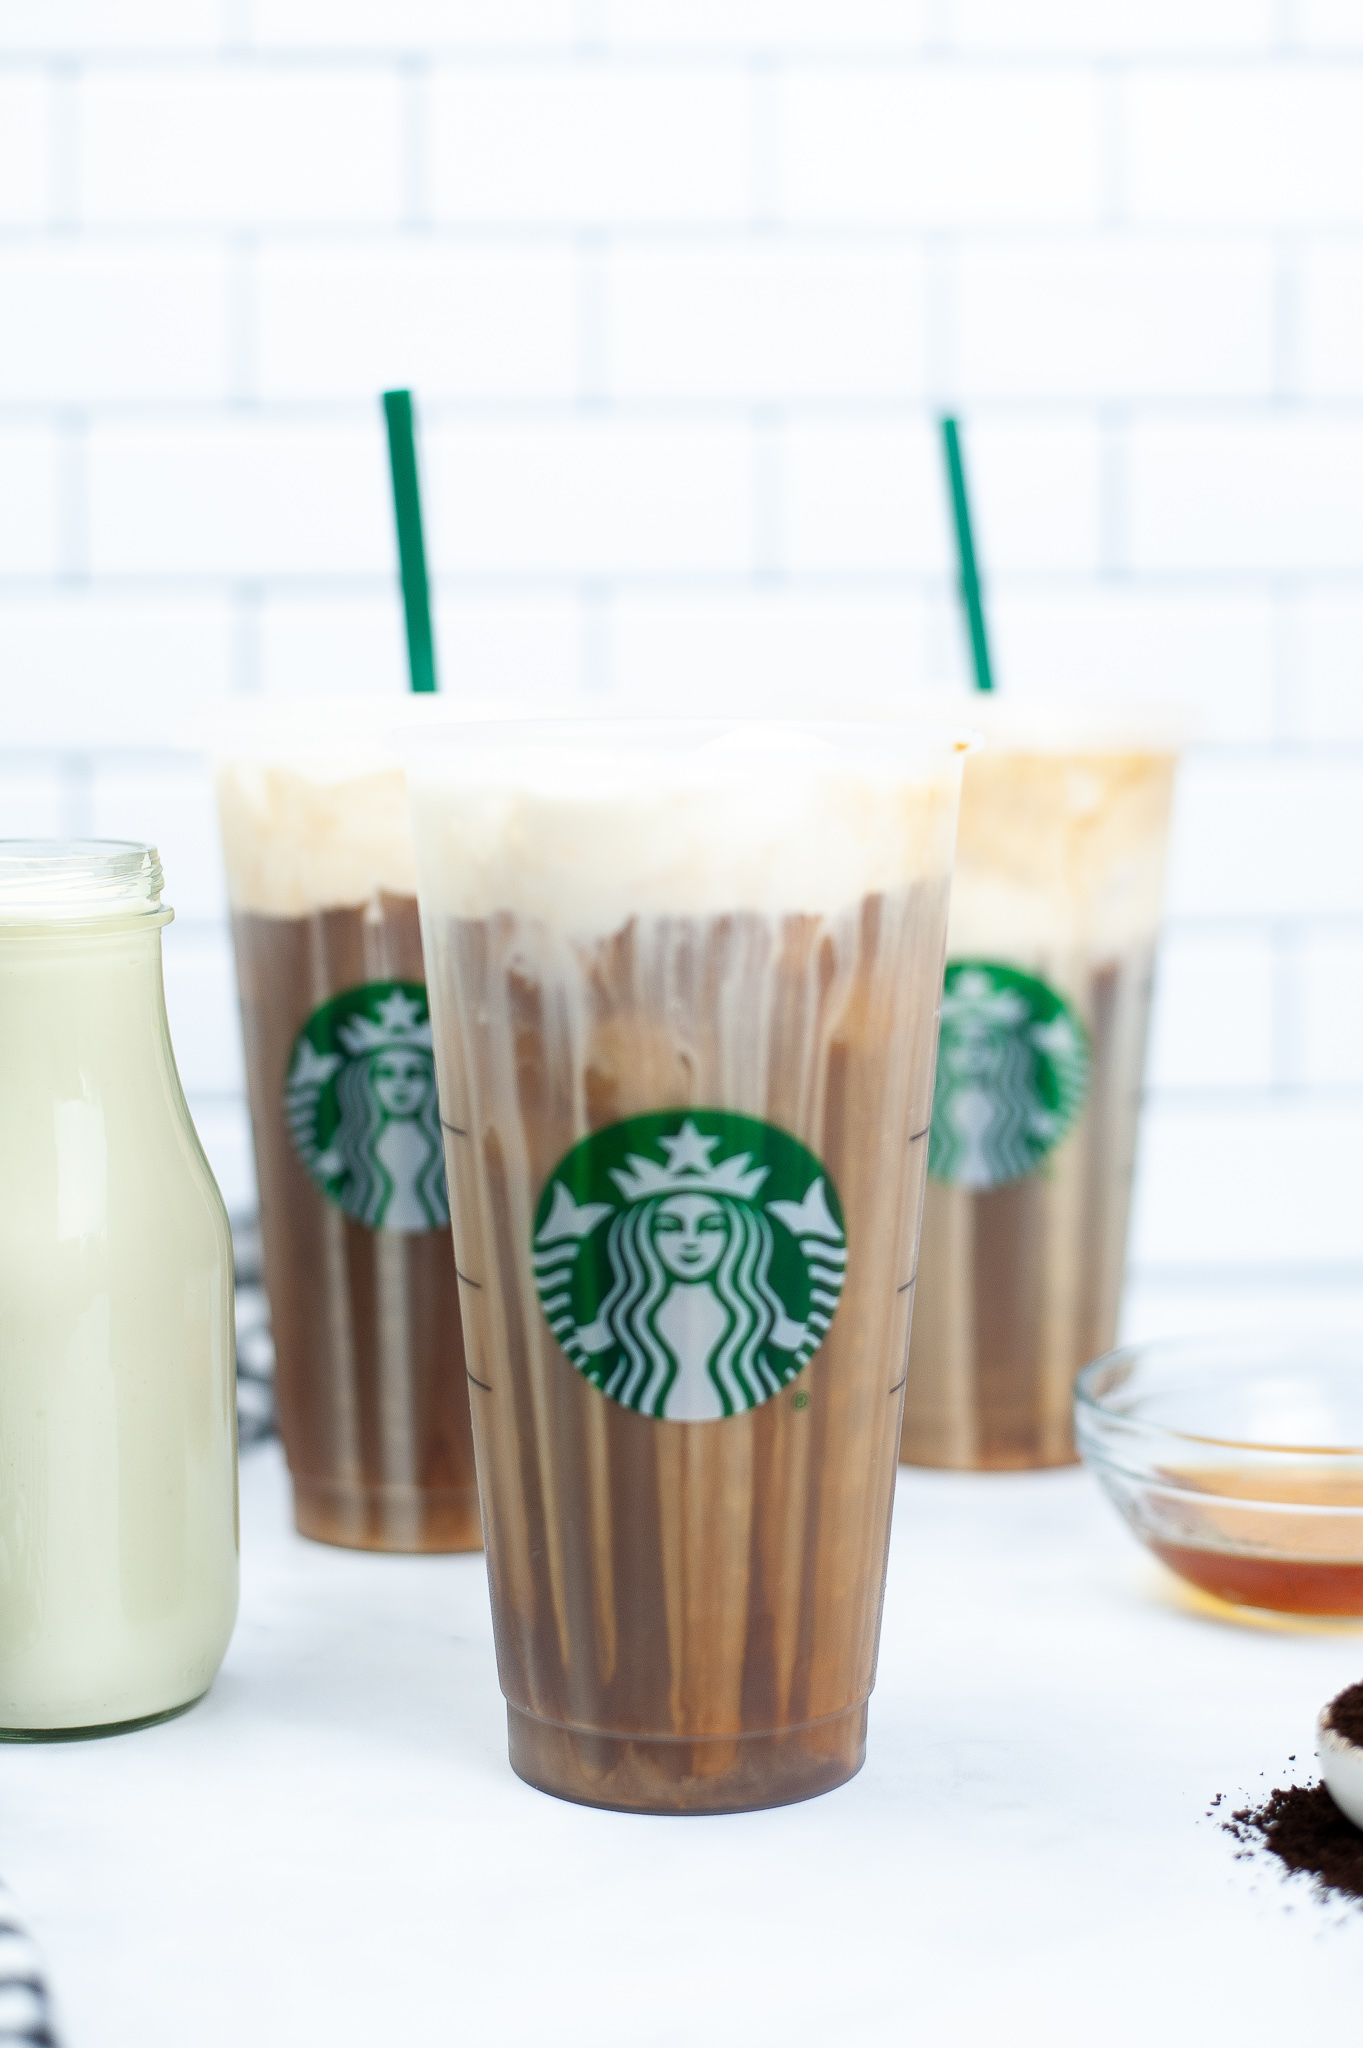 # starbucks tumblers filled with vanilla sweet cream cold brew